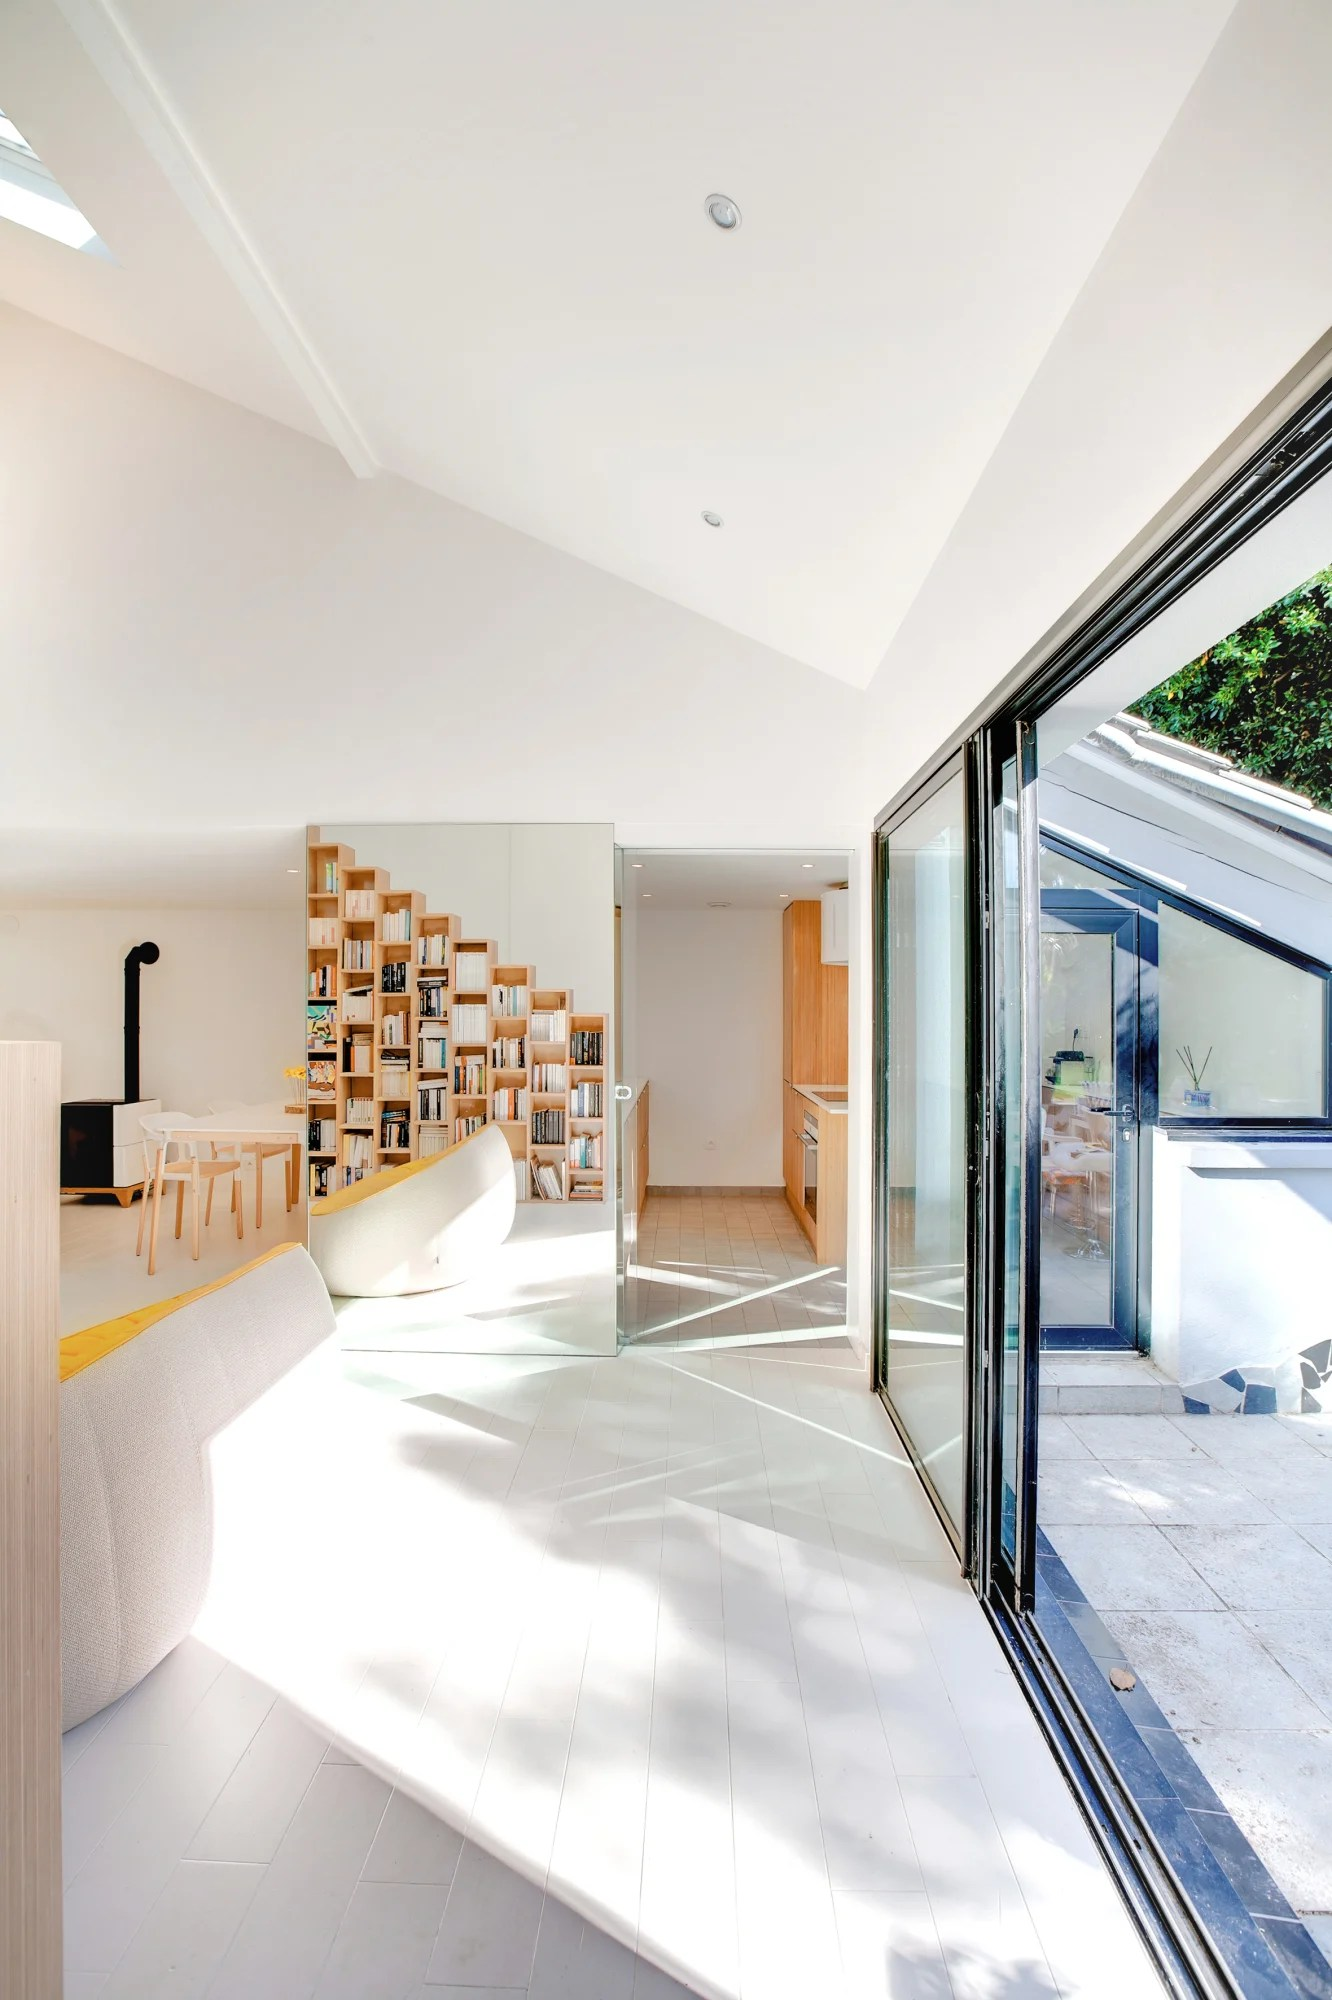 Andrea Mosca Creative Studio The Bookshelf House Divisare